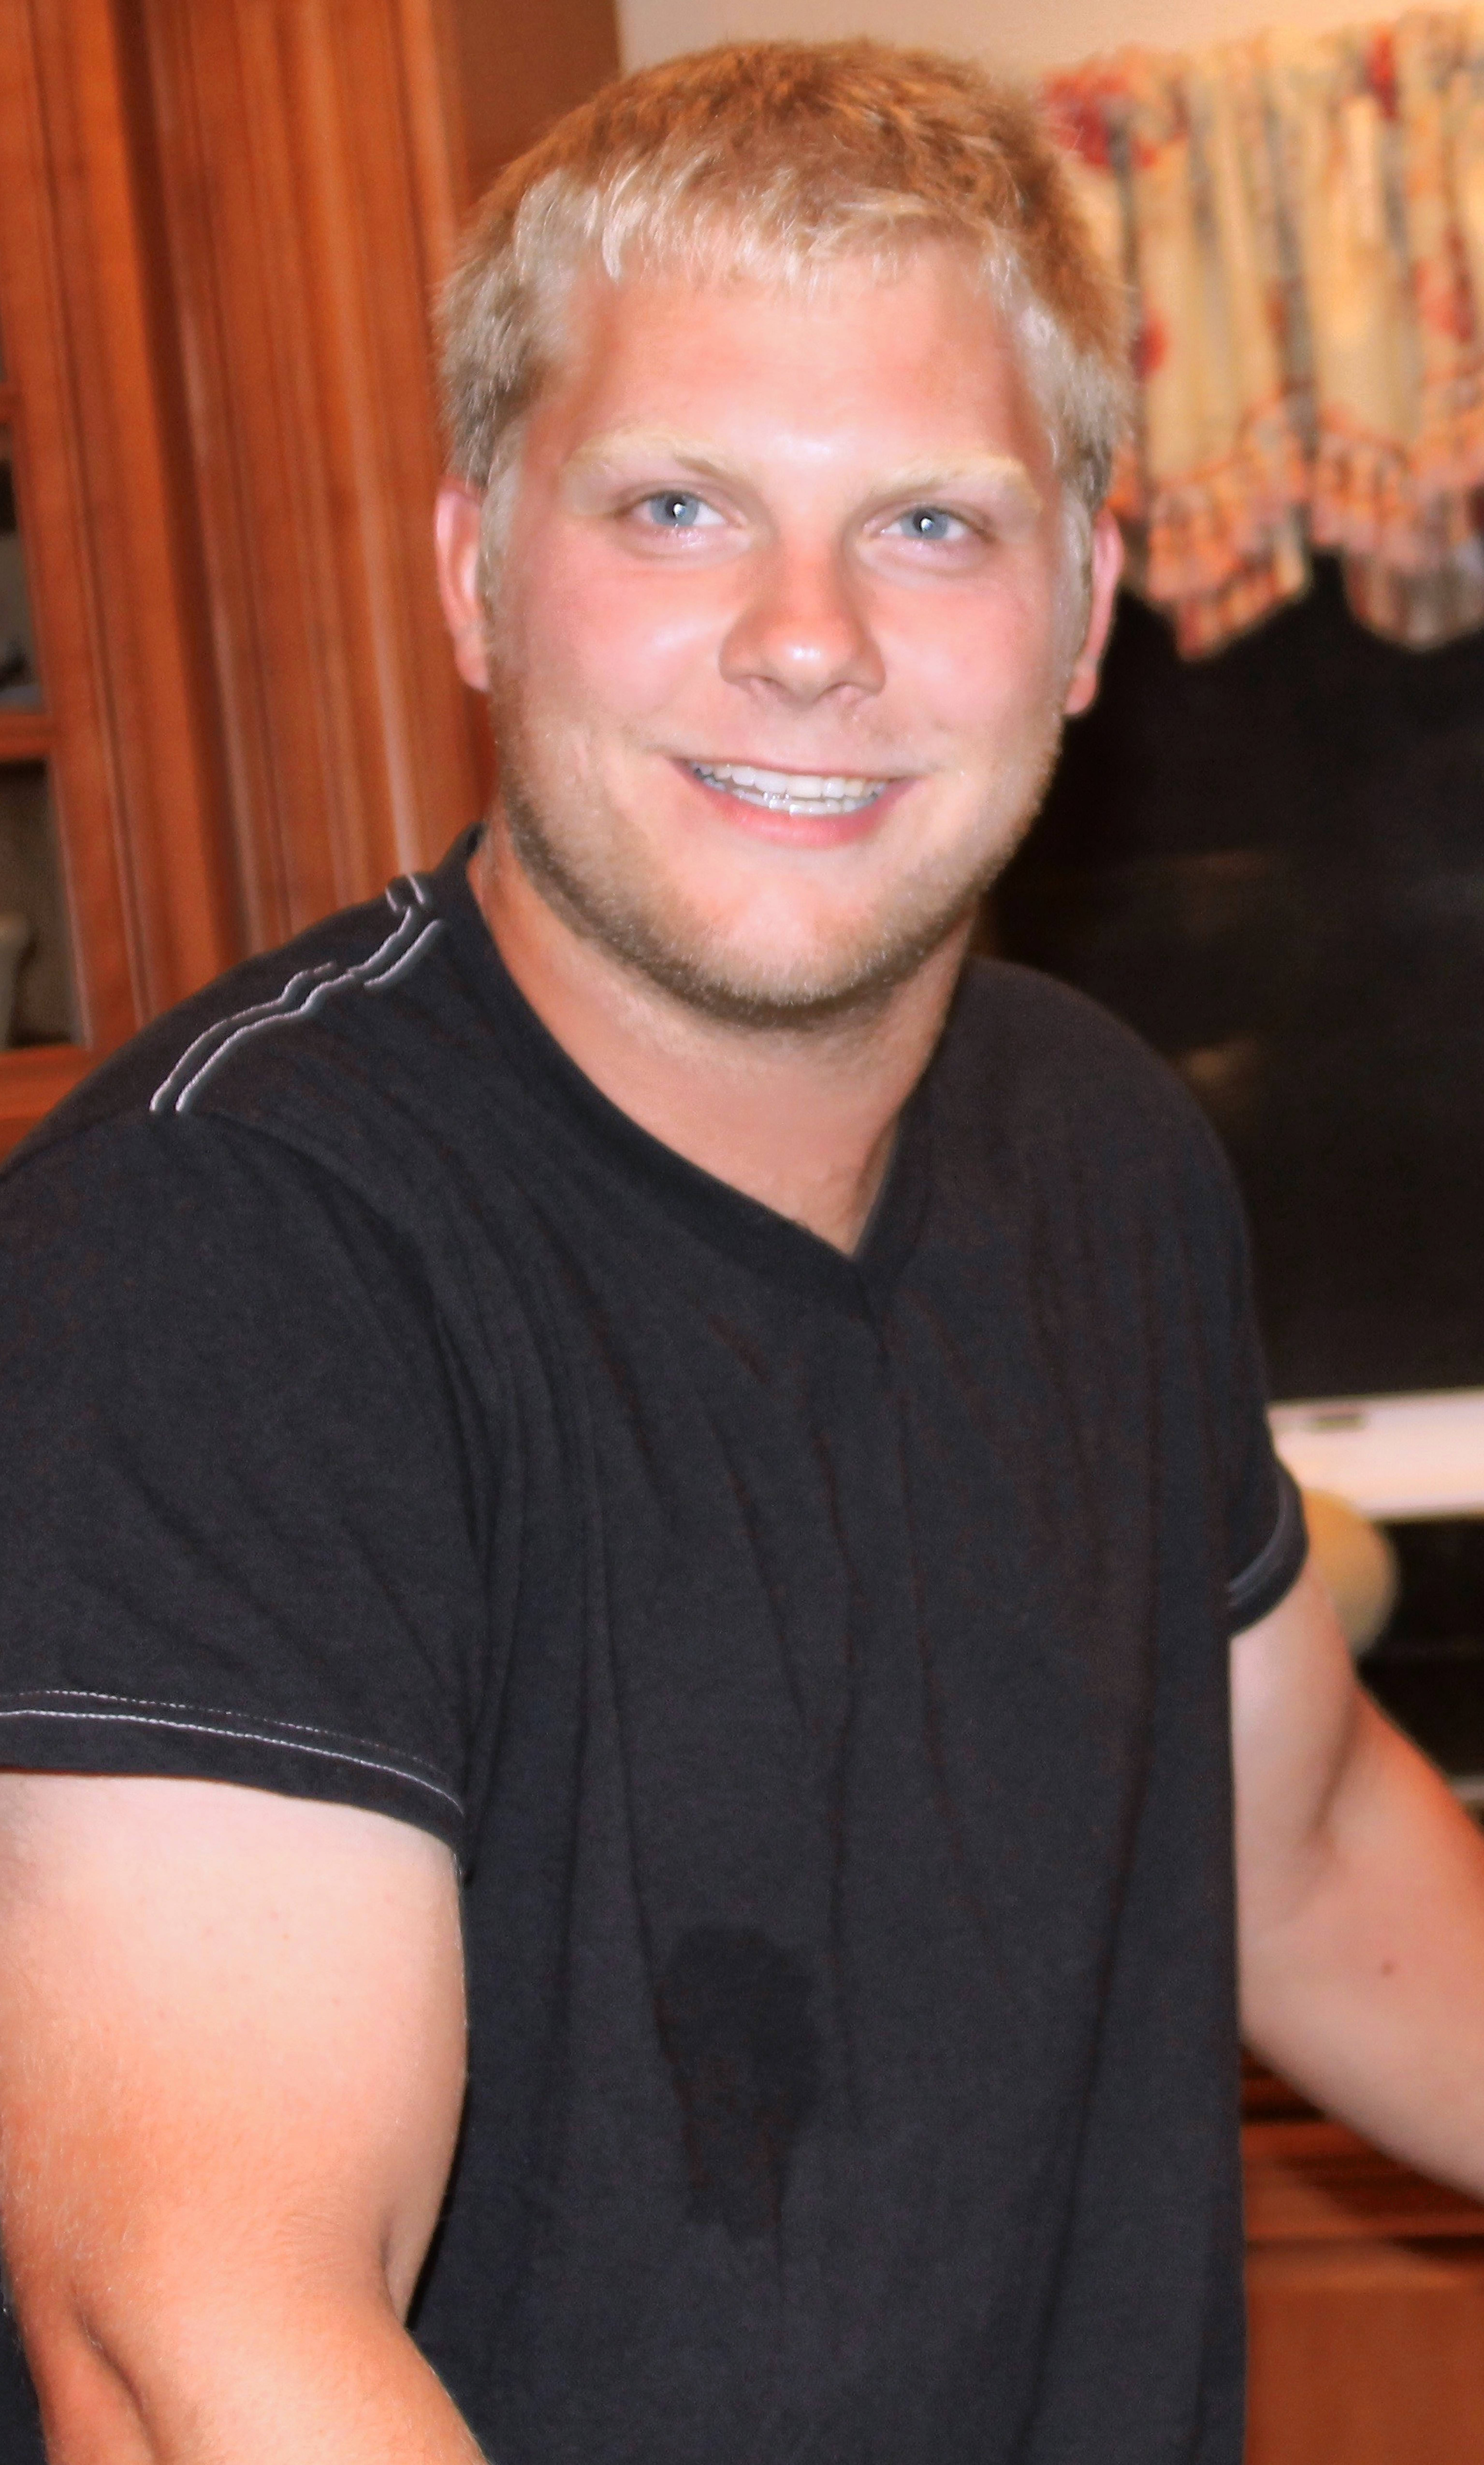 Matthew Paulson, 29, of Barrington, was killed Thursday when he was struck by a vehicle in Park City, Lake County officials said. Paulson, an electrician, had been working on a roadside project when the crash occurred, his family says.